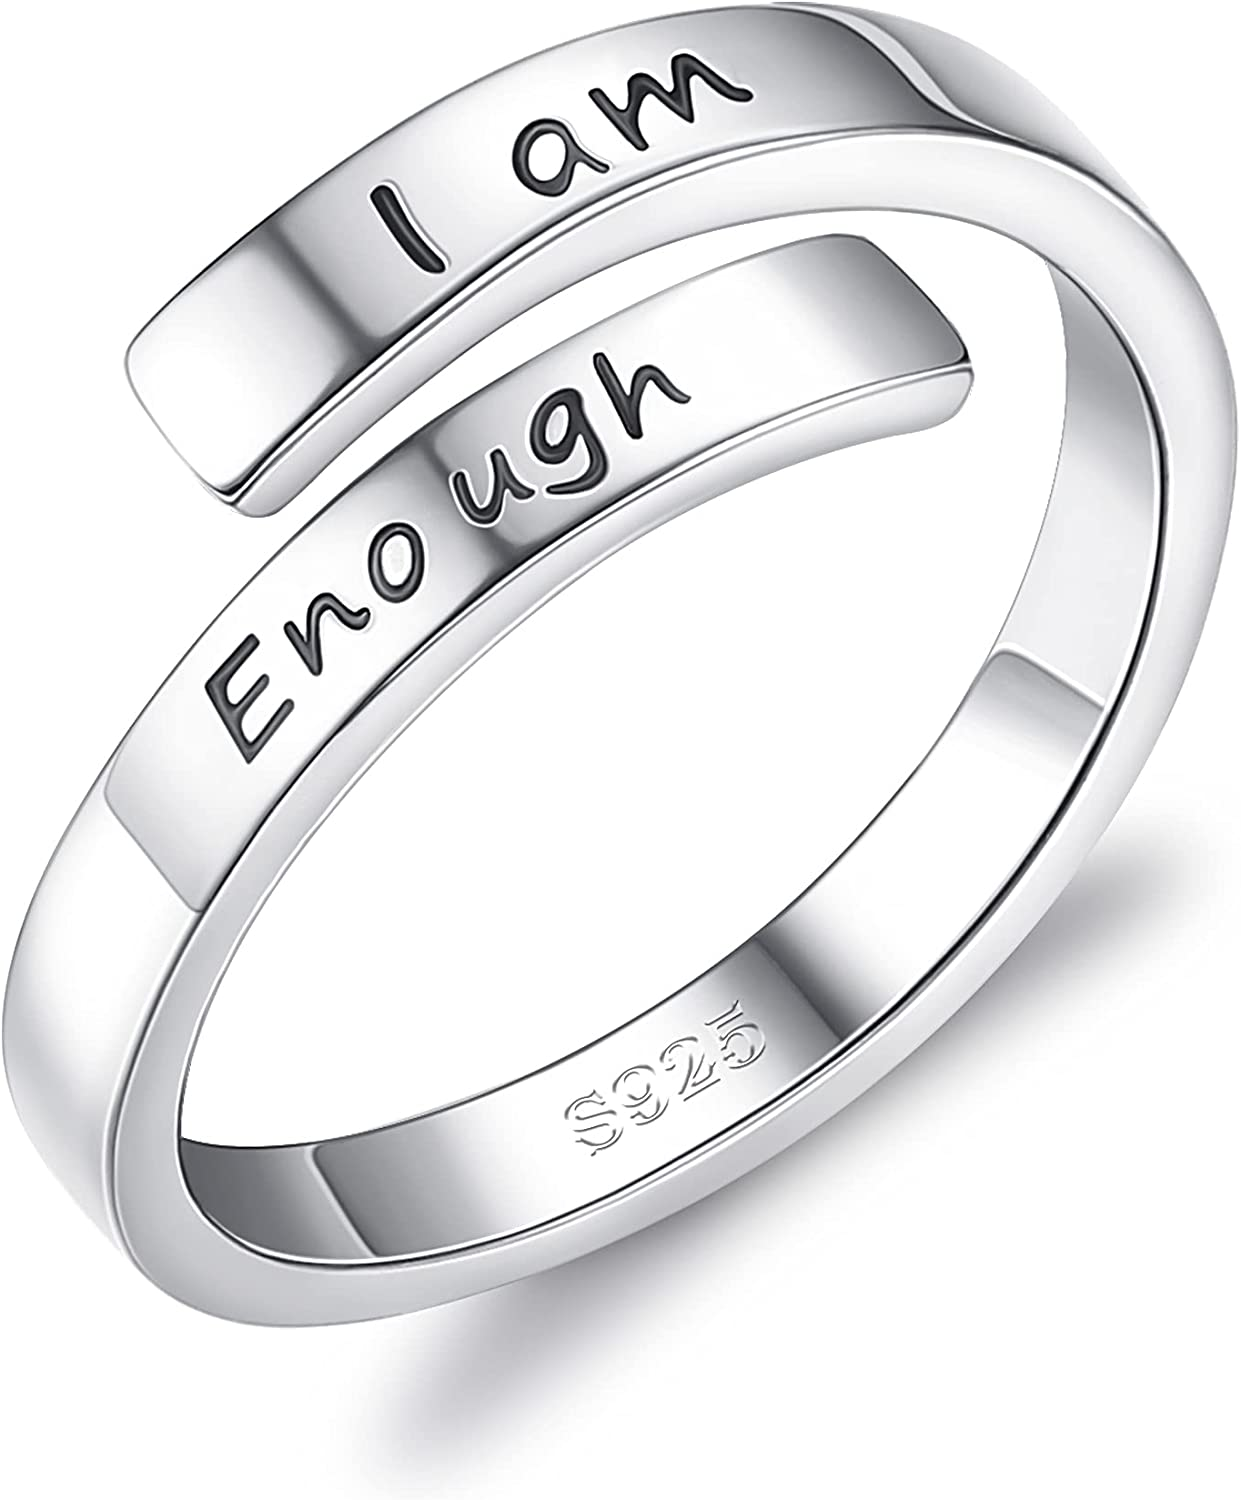 Milacolato I Am Enough Rings 925 Sterling White 18K Ranking Ranking TOP9 TOP8 Gold Silver